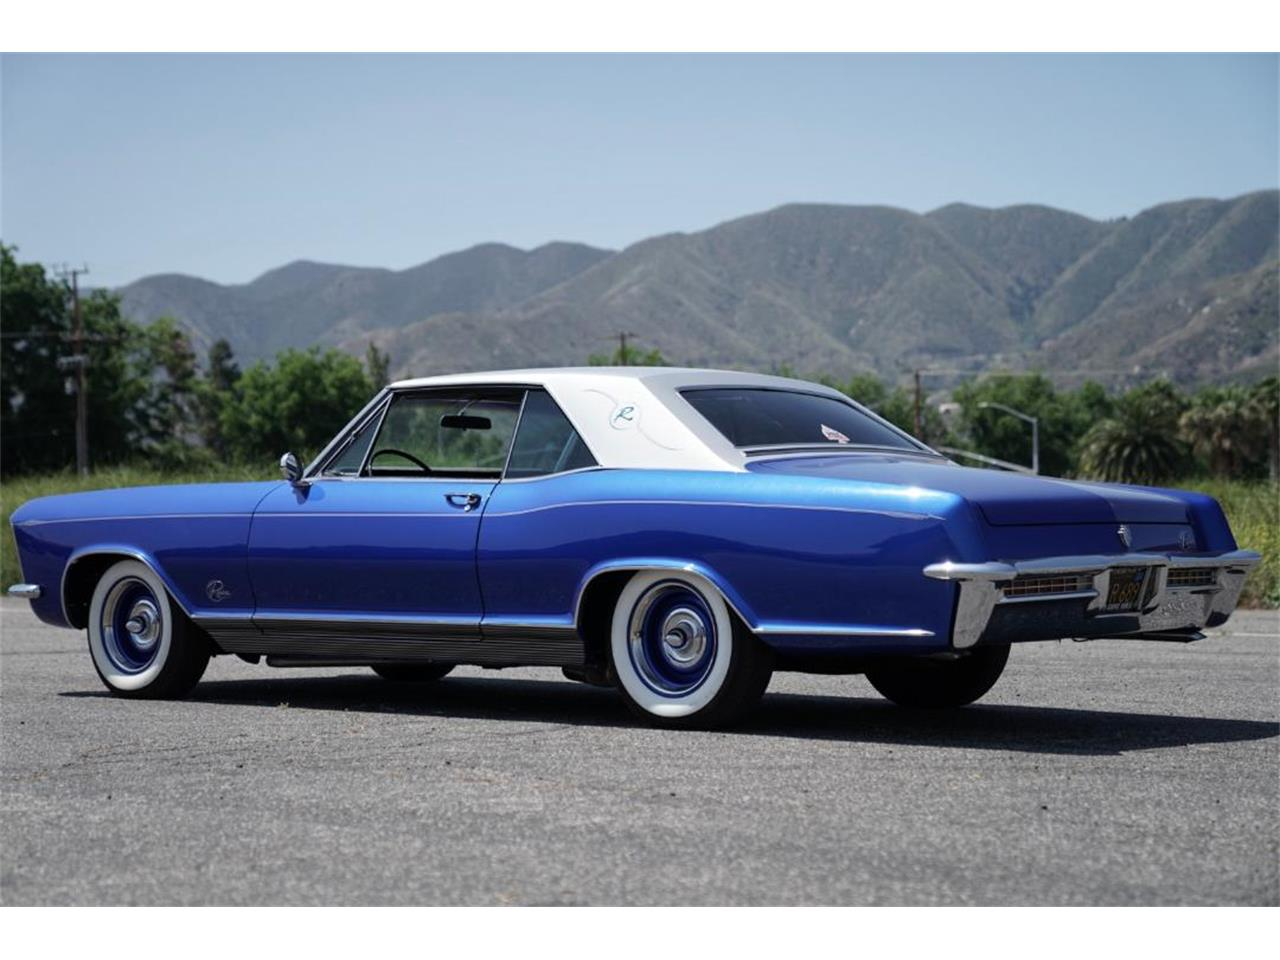 Large Picture of 1965 Buick Riviera - $27,499.00 - QHFP